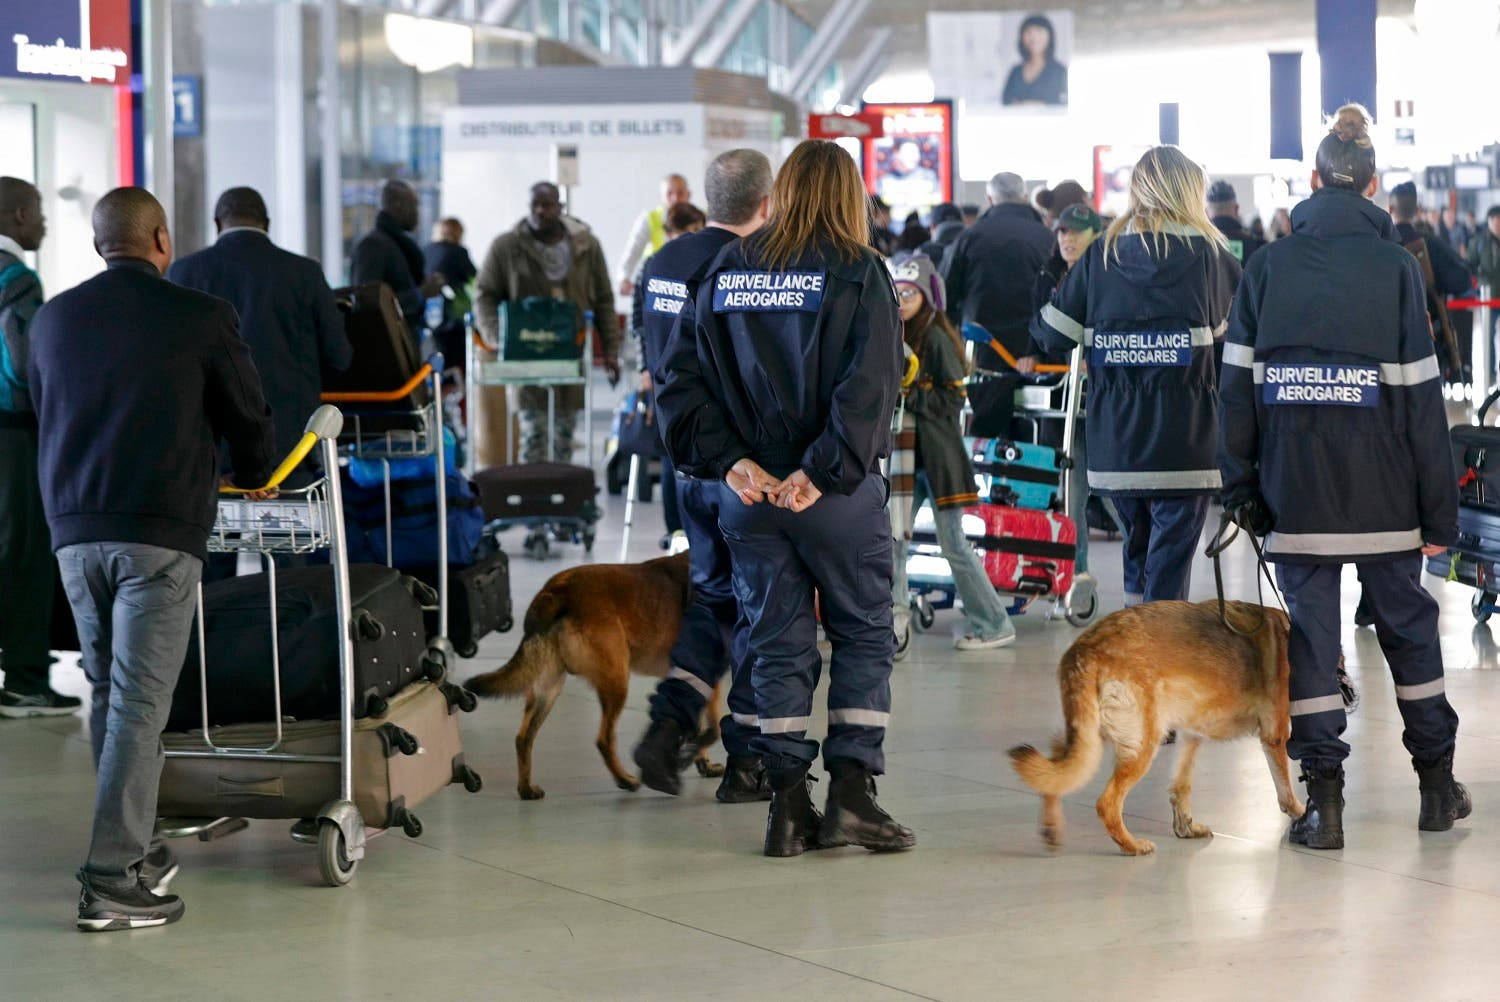 Members of airport security patrol inside the Charles de Gaulle International Airport in Roissy, near Paris, France, March 23, 2016 as France has decided to deploy 1,600 additional police officers to bolster security at its borders and on public transport following the bomb attacks in Brussels. REUTERS